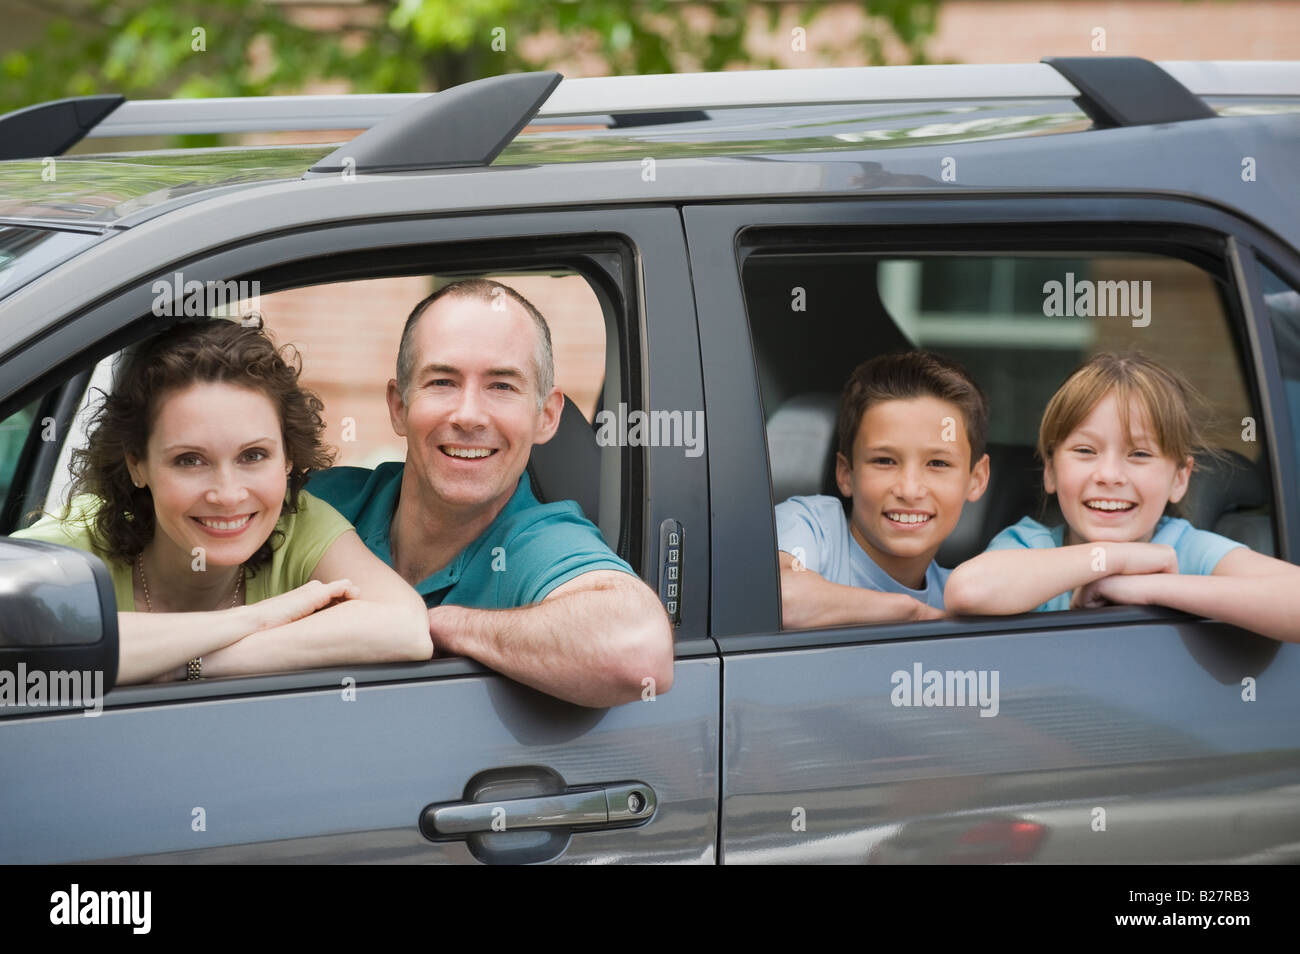 Family with two children looking out car windows - Stock Image